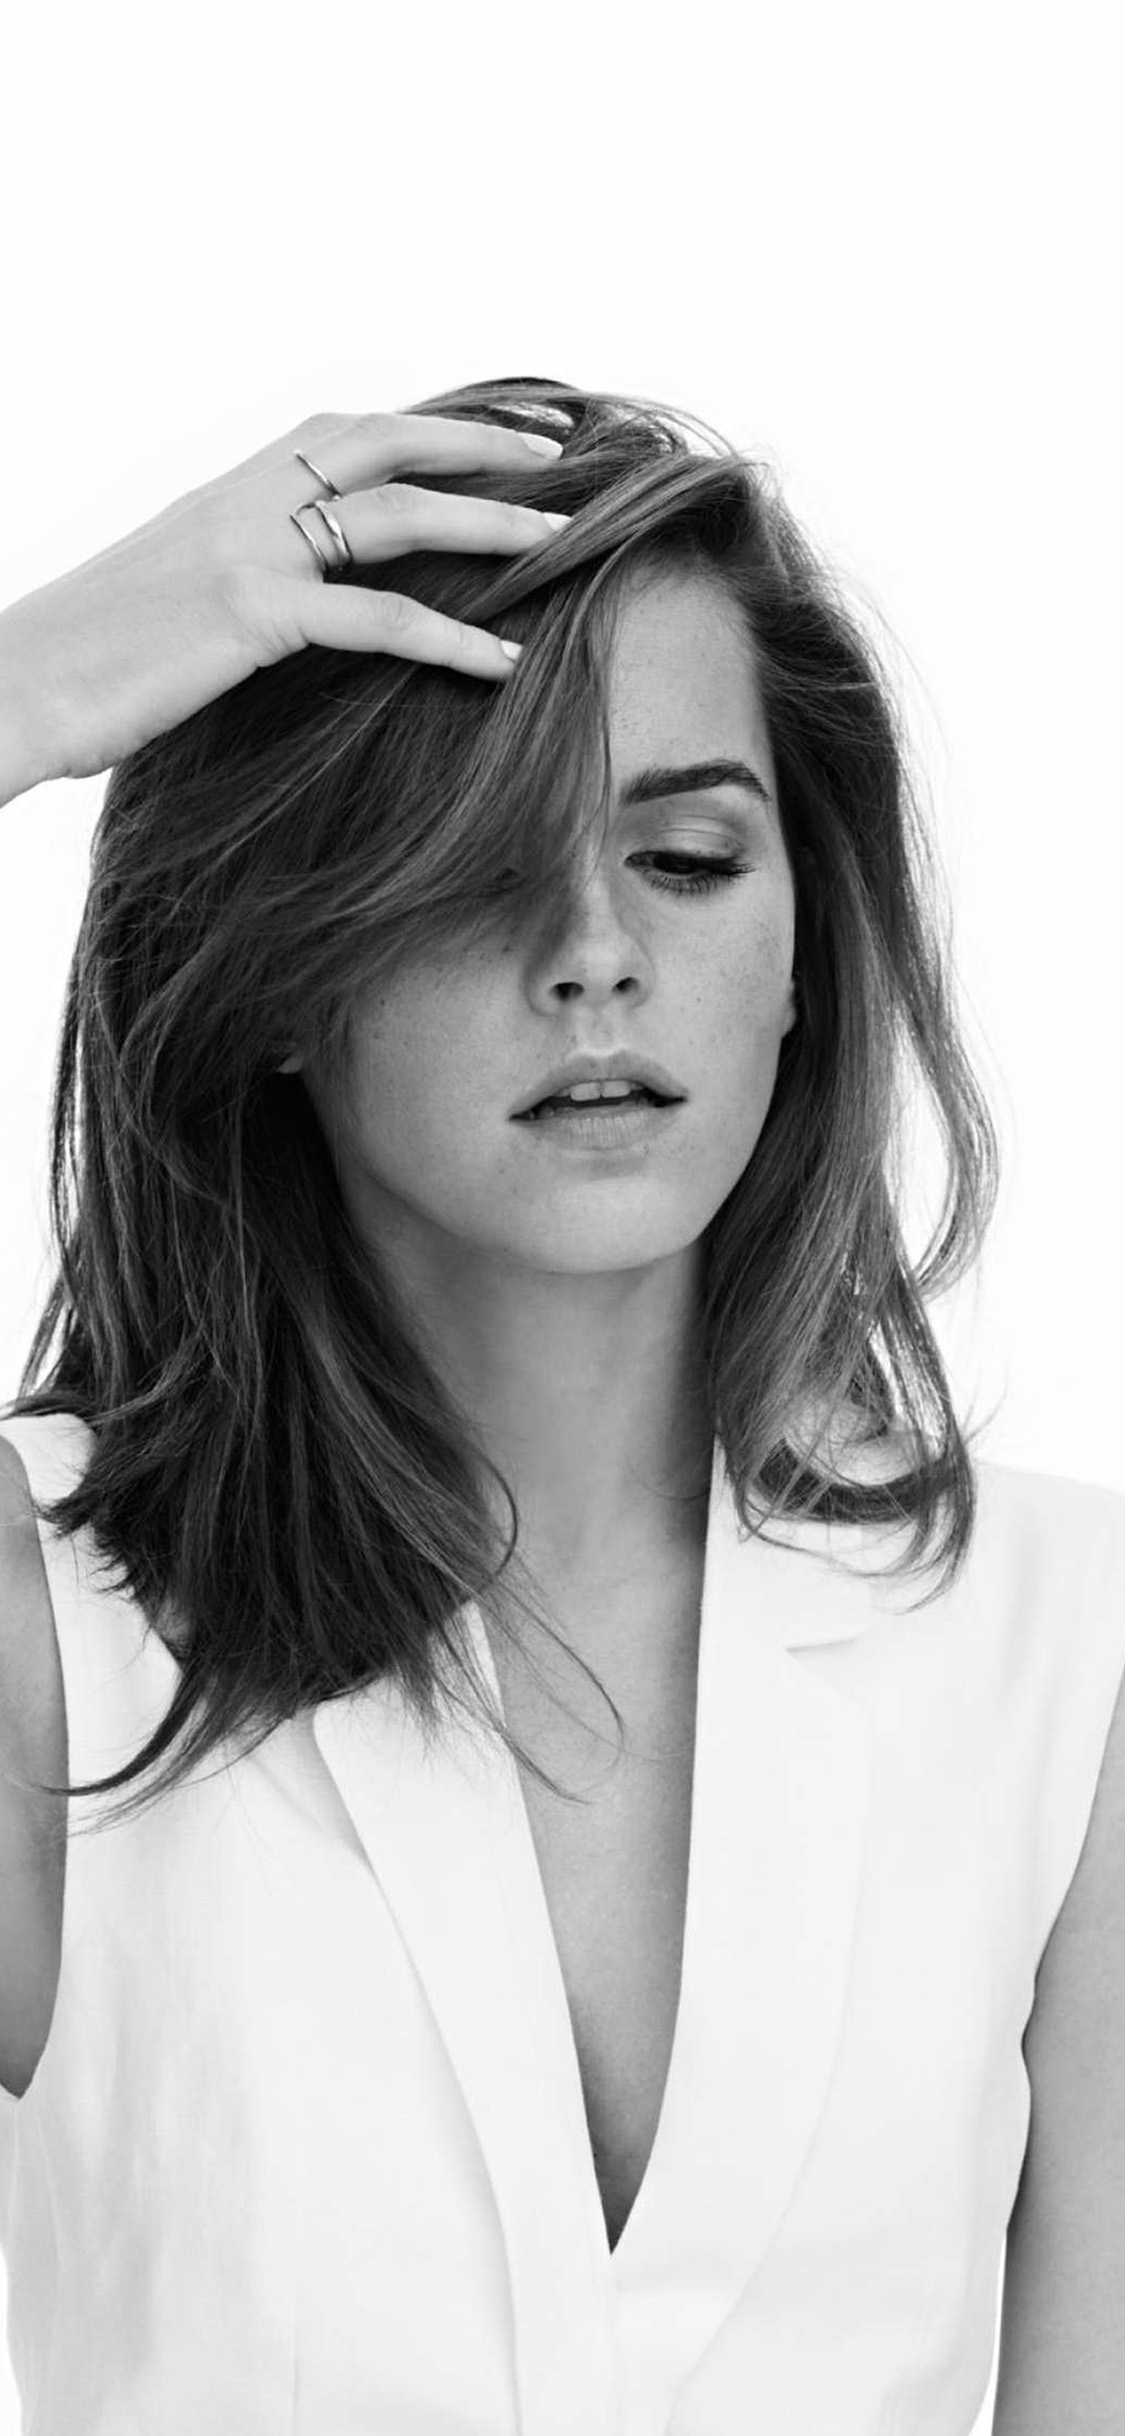 iPhonexpapers.com-Apple-iPhone-wallpaper-hq65-emma-watson-bw-film-actress-girl